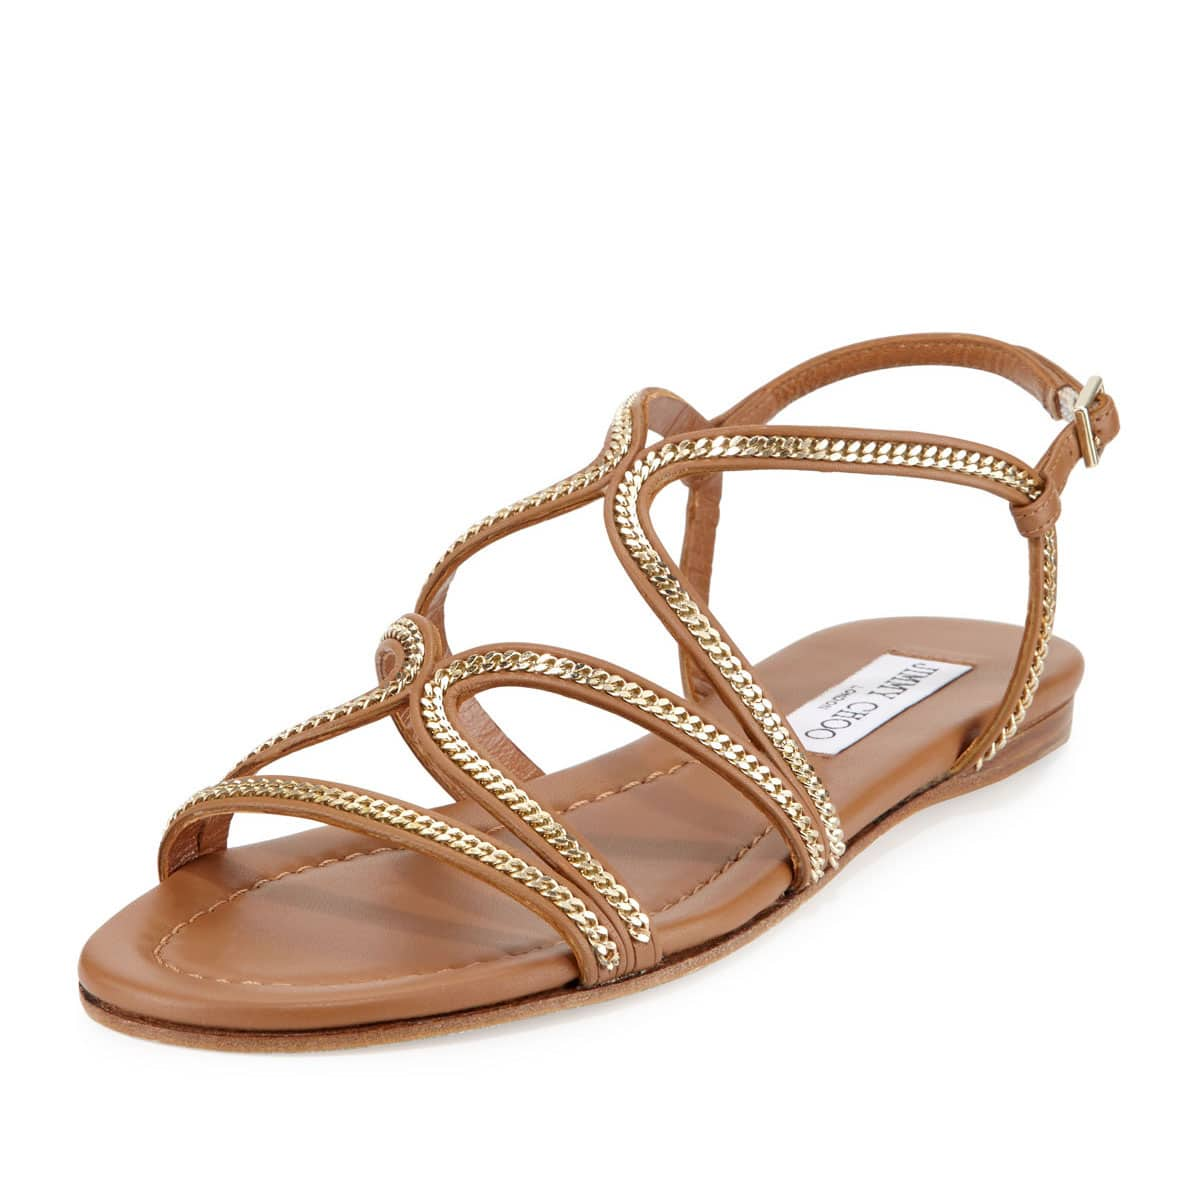 Shop Flat Chain Sandals From Spring/Summer 2016